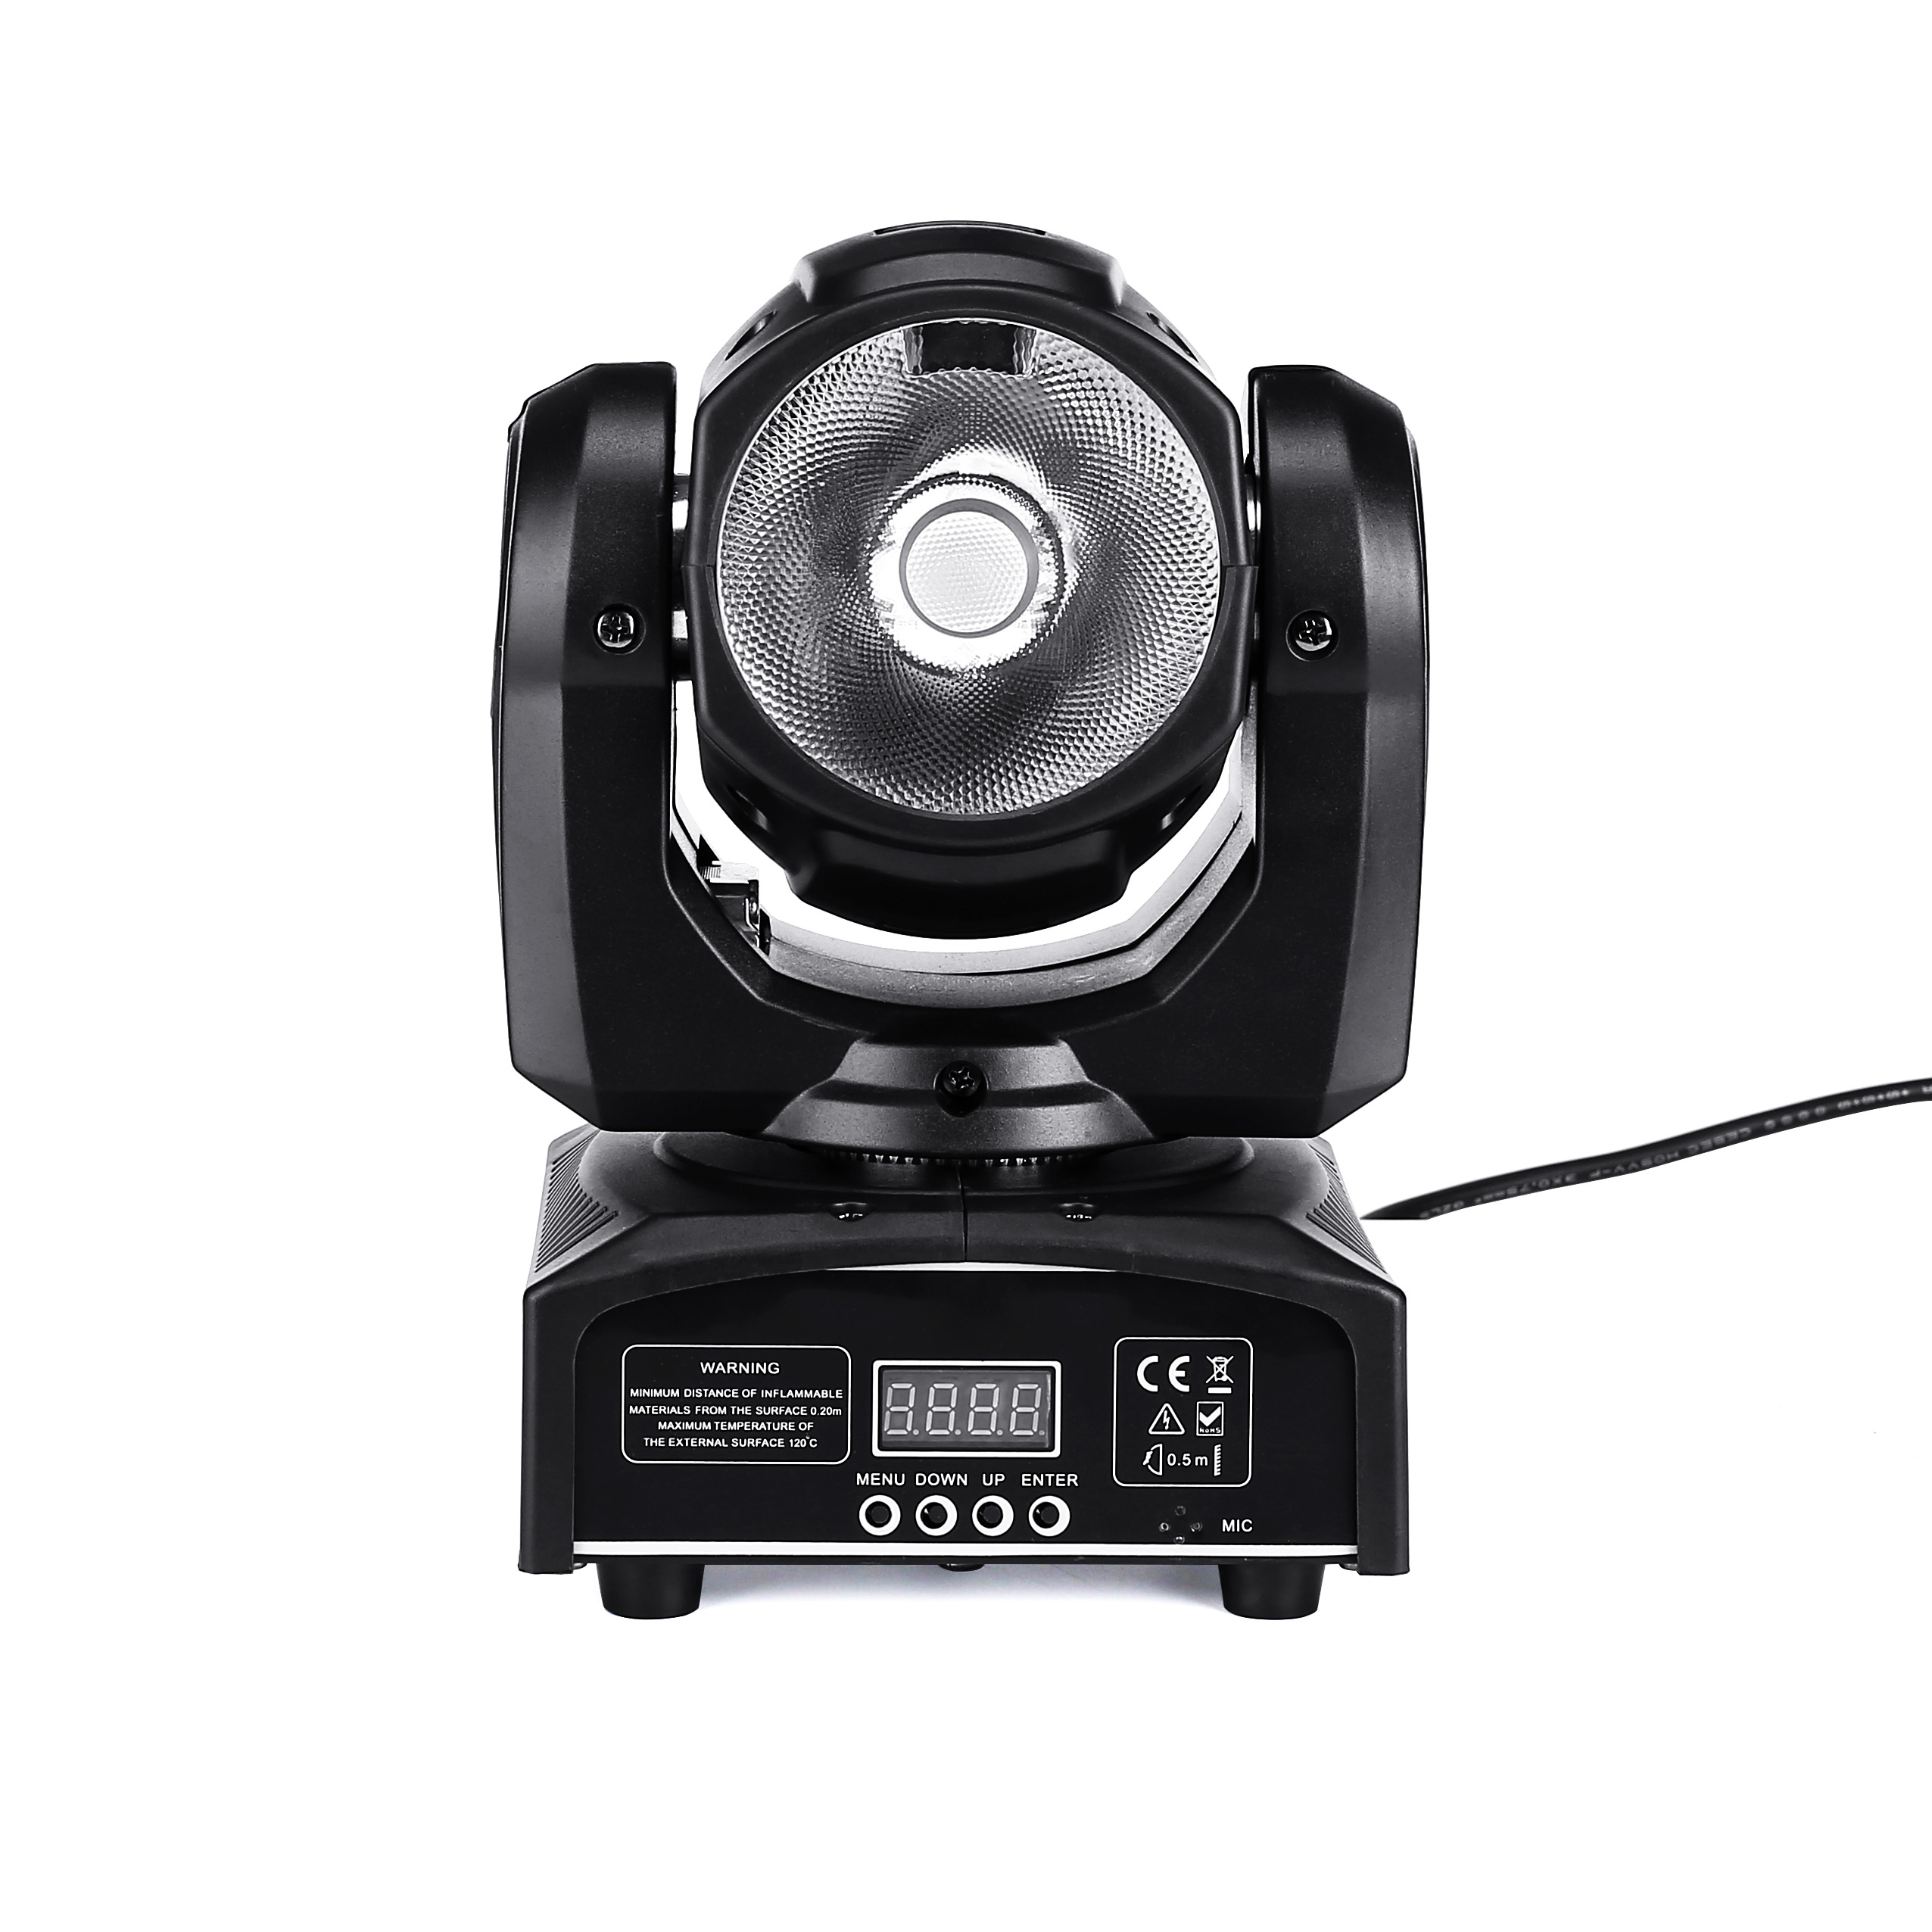 65W Led RGBW 4in1 Beam Moving Head Light 60W Beam Moving Heads Lights Super Bright LED DJ Spot Light Dmx Control Lights